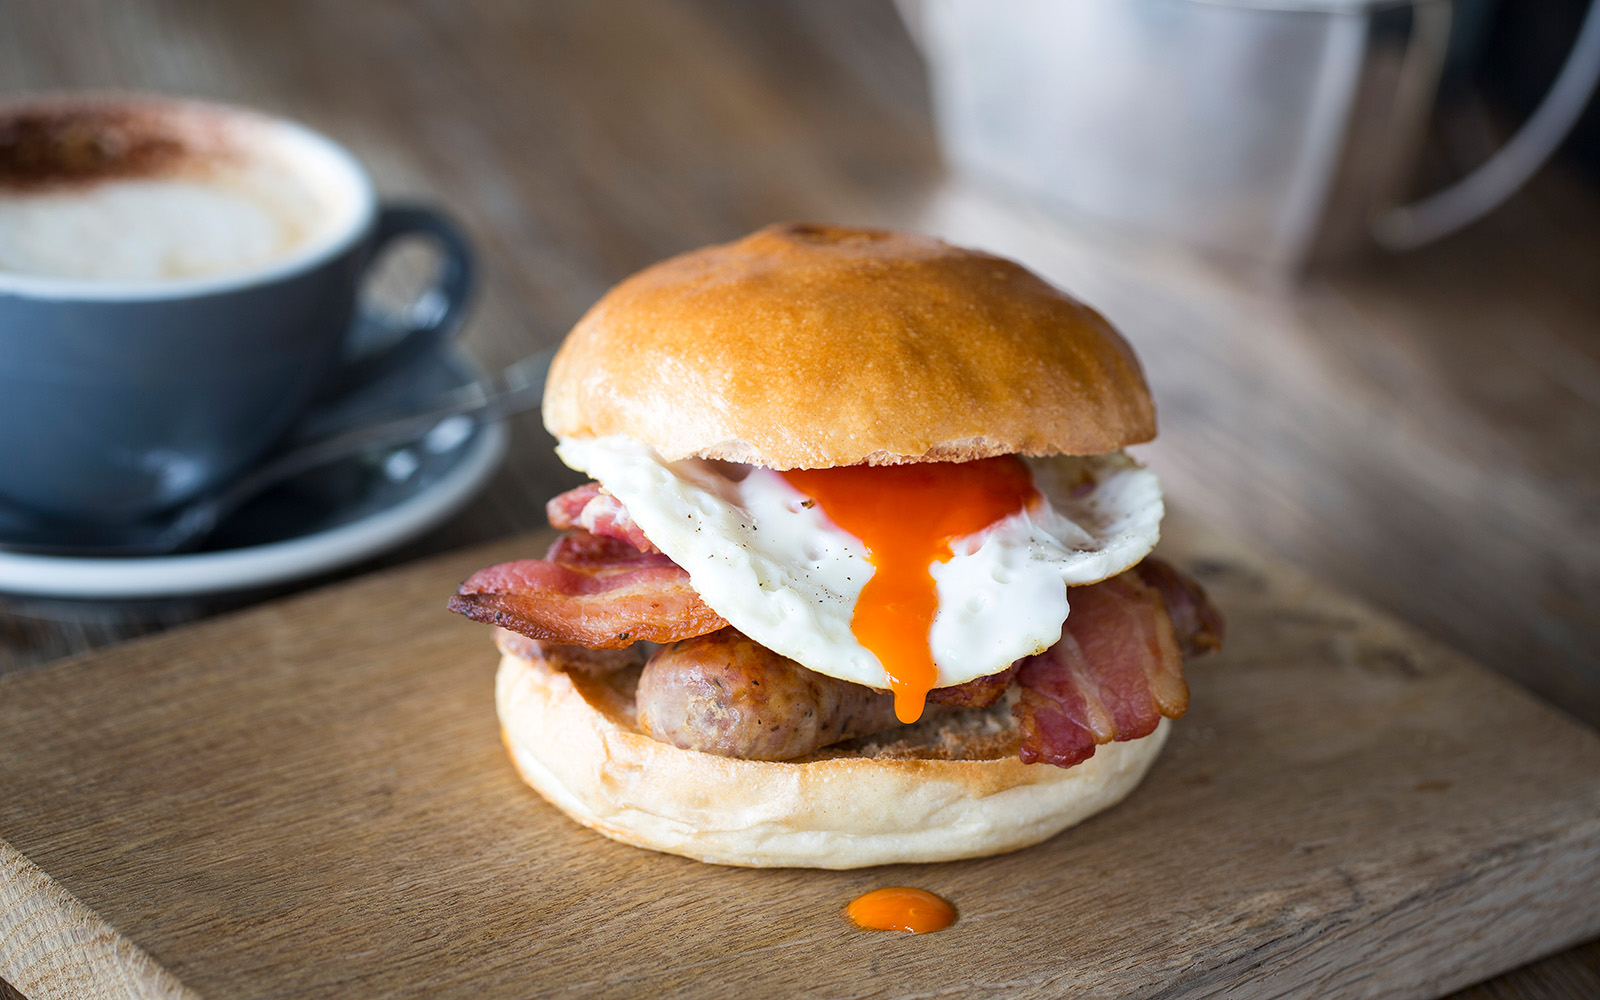 Photo of a breakfast brioche bun with cumberland sausage, smoked streaky bacon and a legbar fried egg.